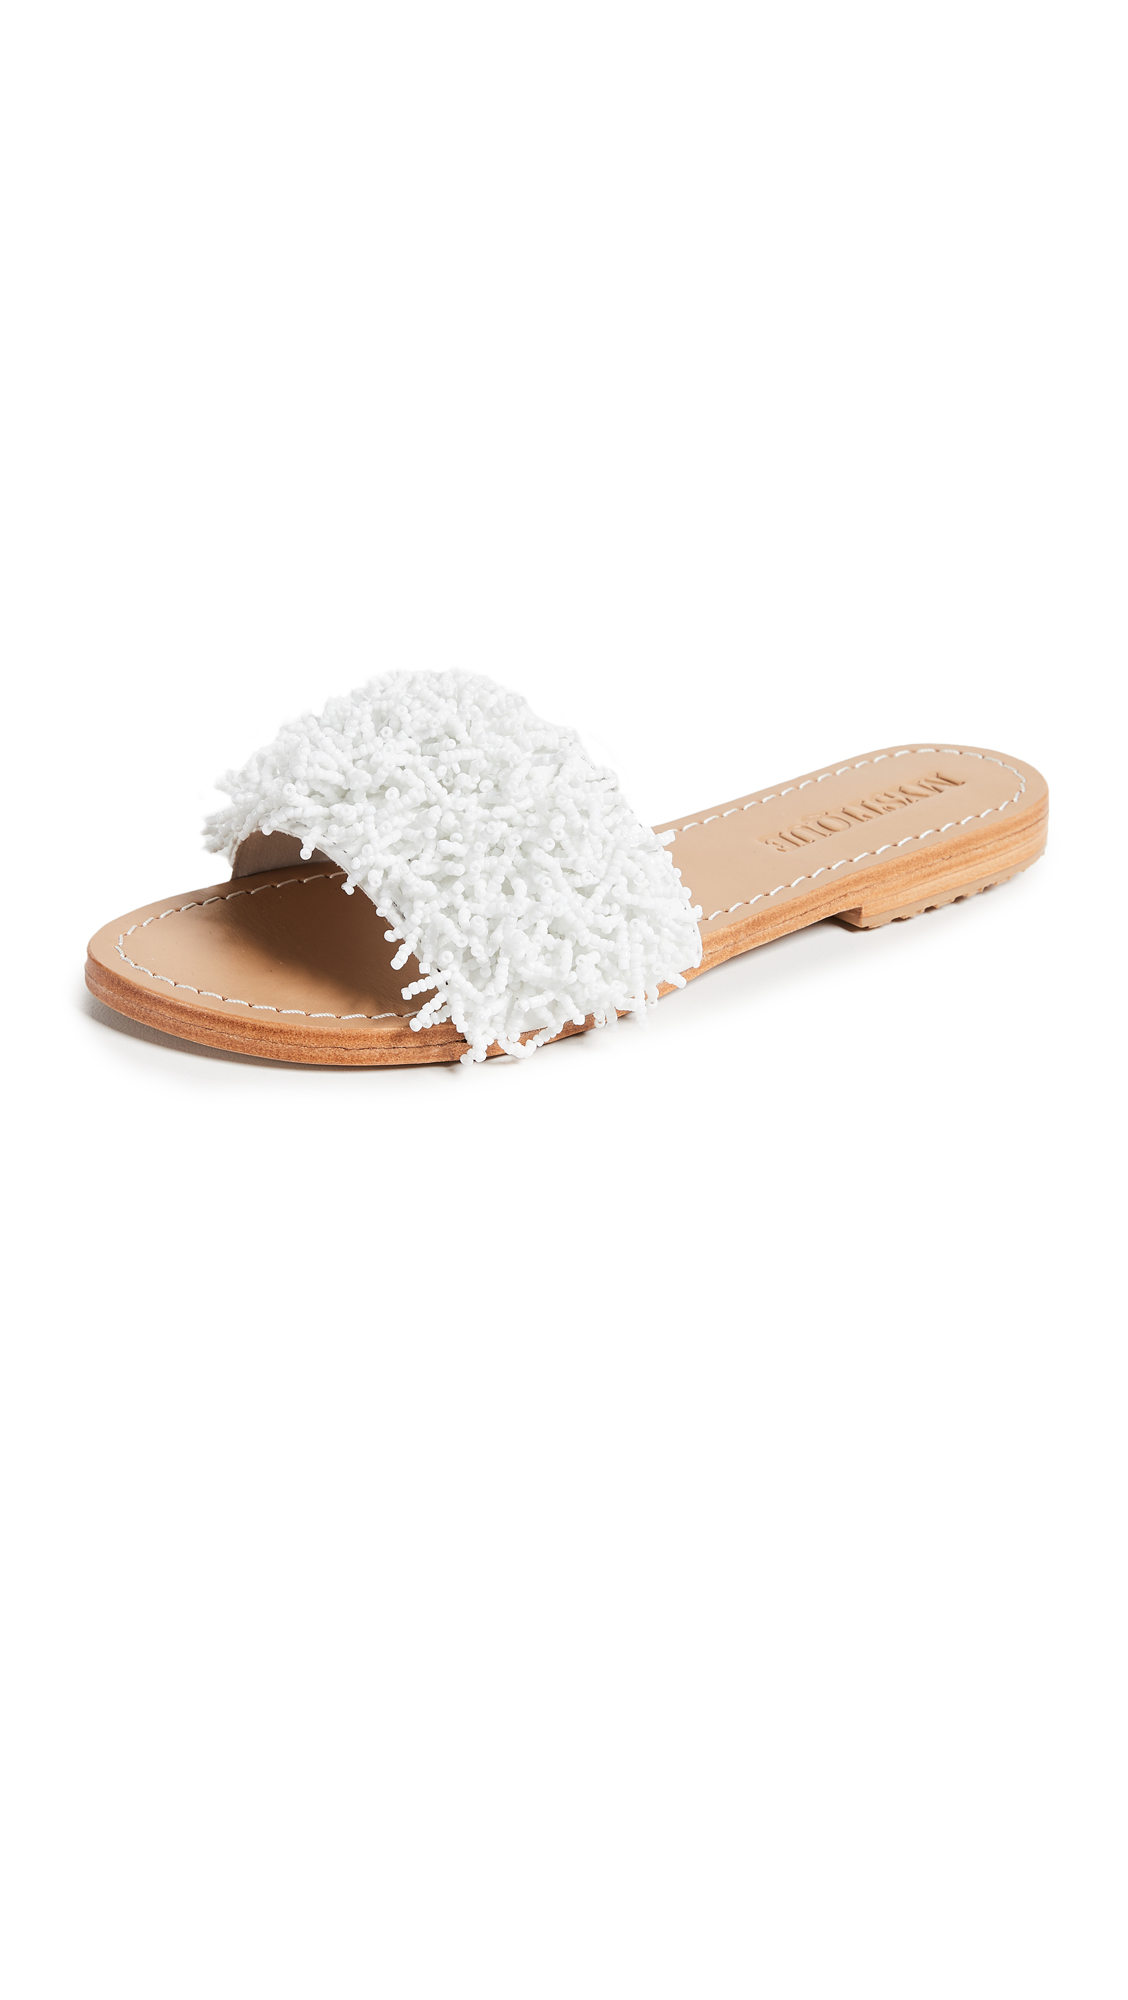 Mystique Coral Slides - White